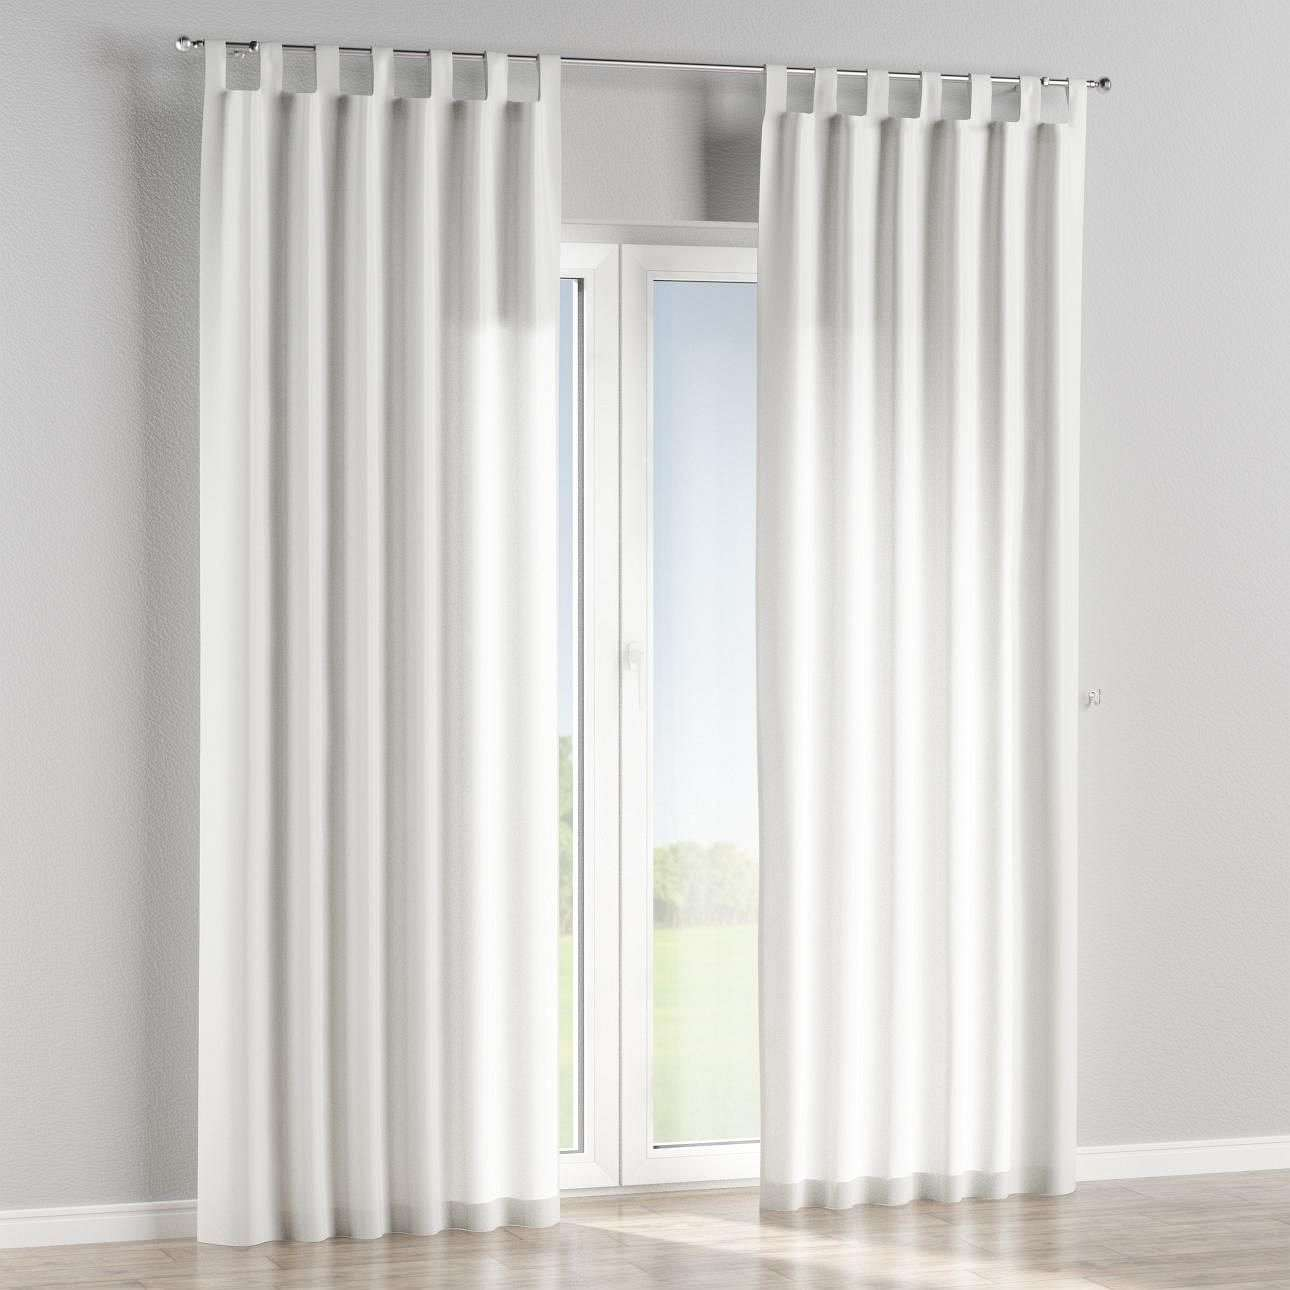 Tab top lined curtains in collection Cardiff, fabric: 136-30